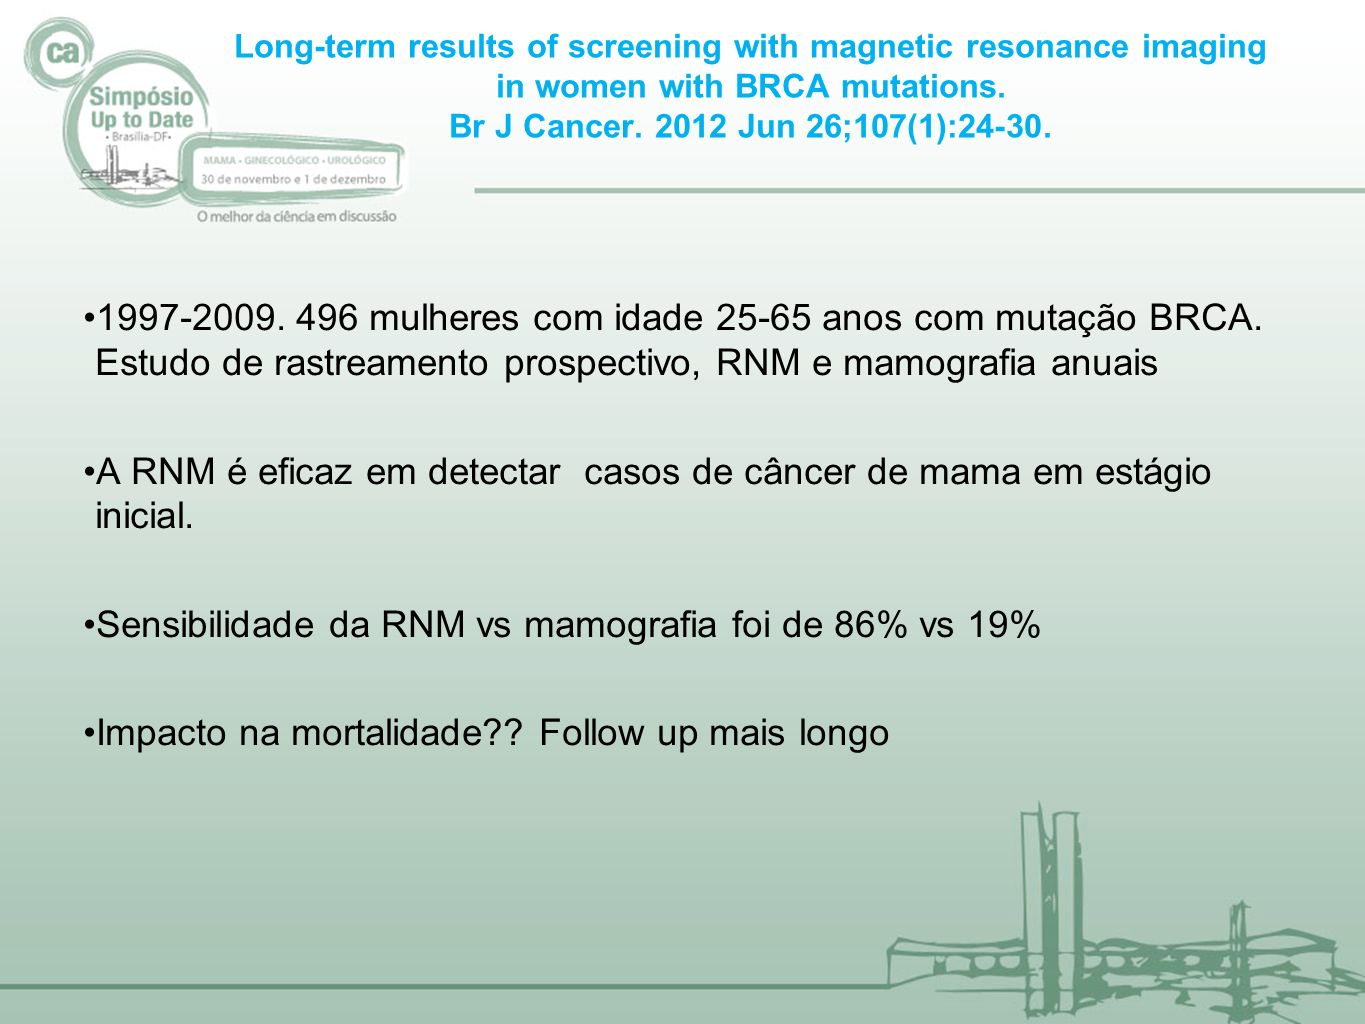 Long-term results of screening with magnetic resonance imaging in women with BRCA mutations. Br J Cancer. 2012 Jun 26;107(1):24-30. 1997-2009. 496 mul